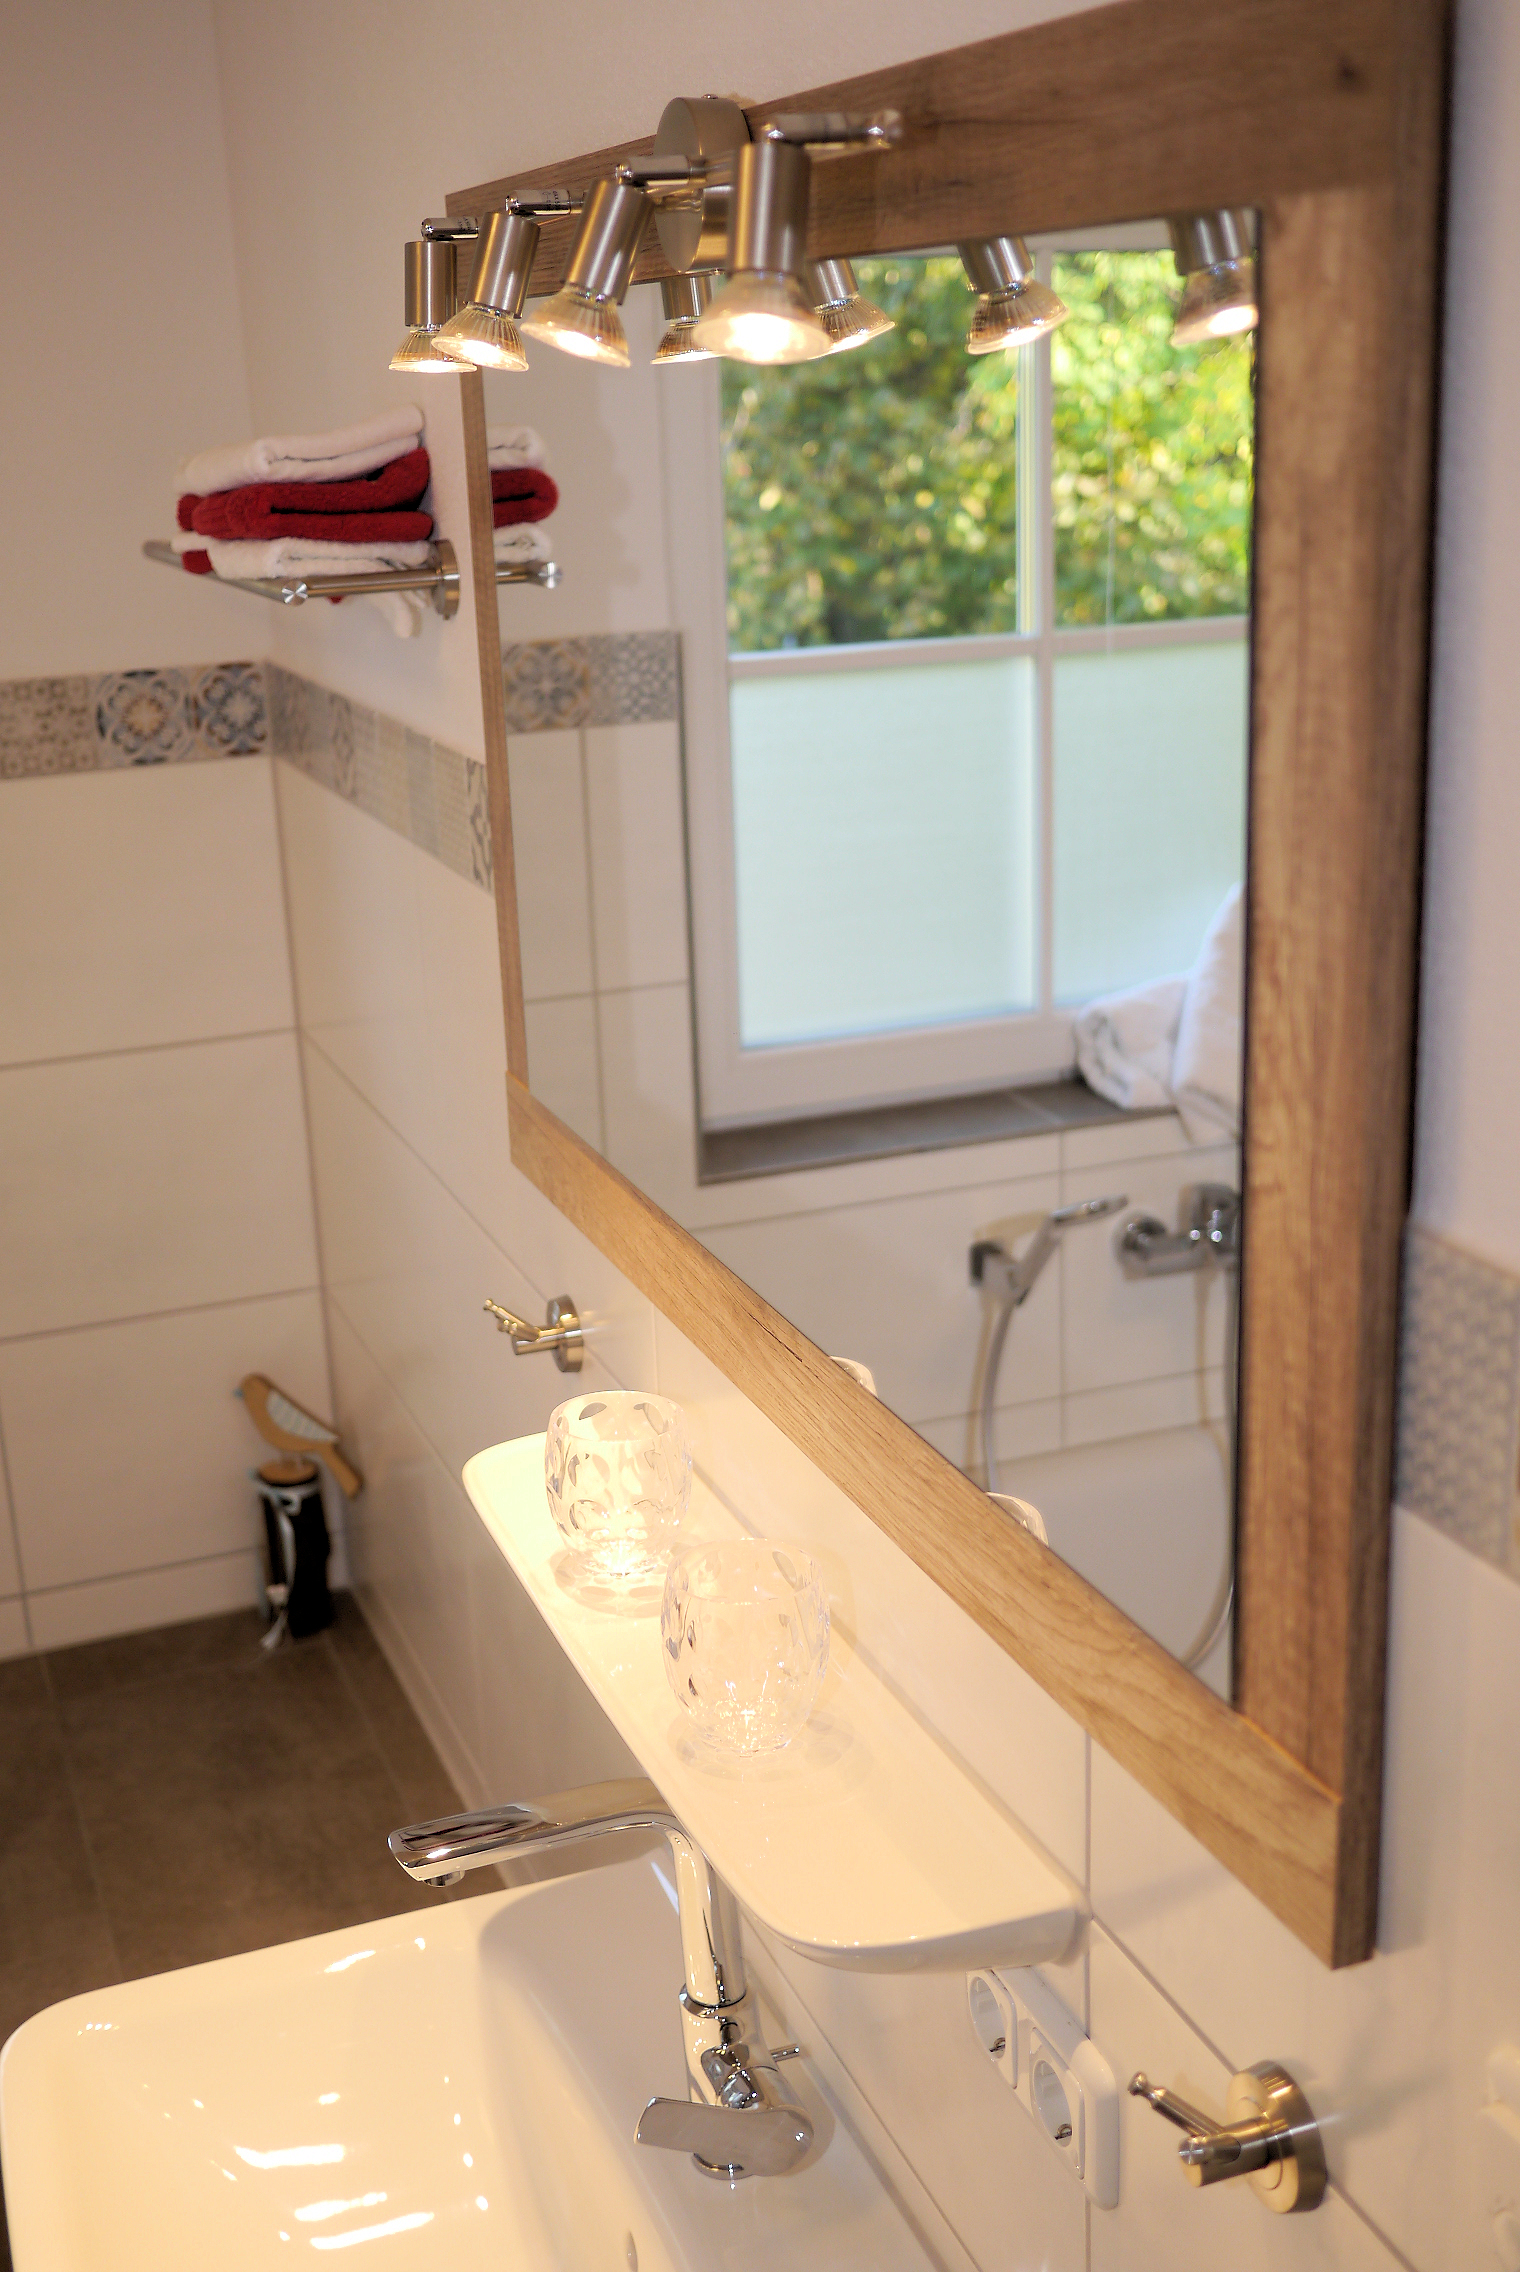 Apt. 2 A further picture of our bathroom.